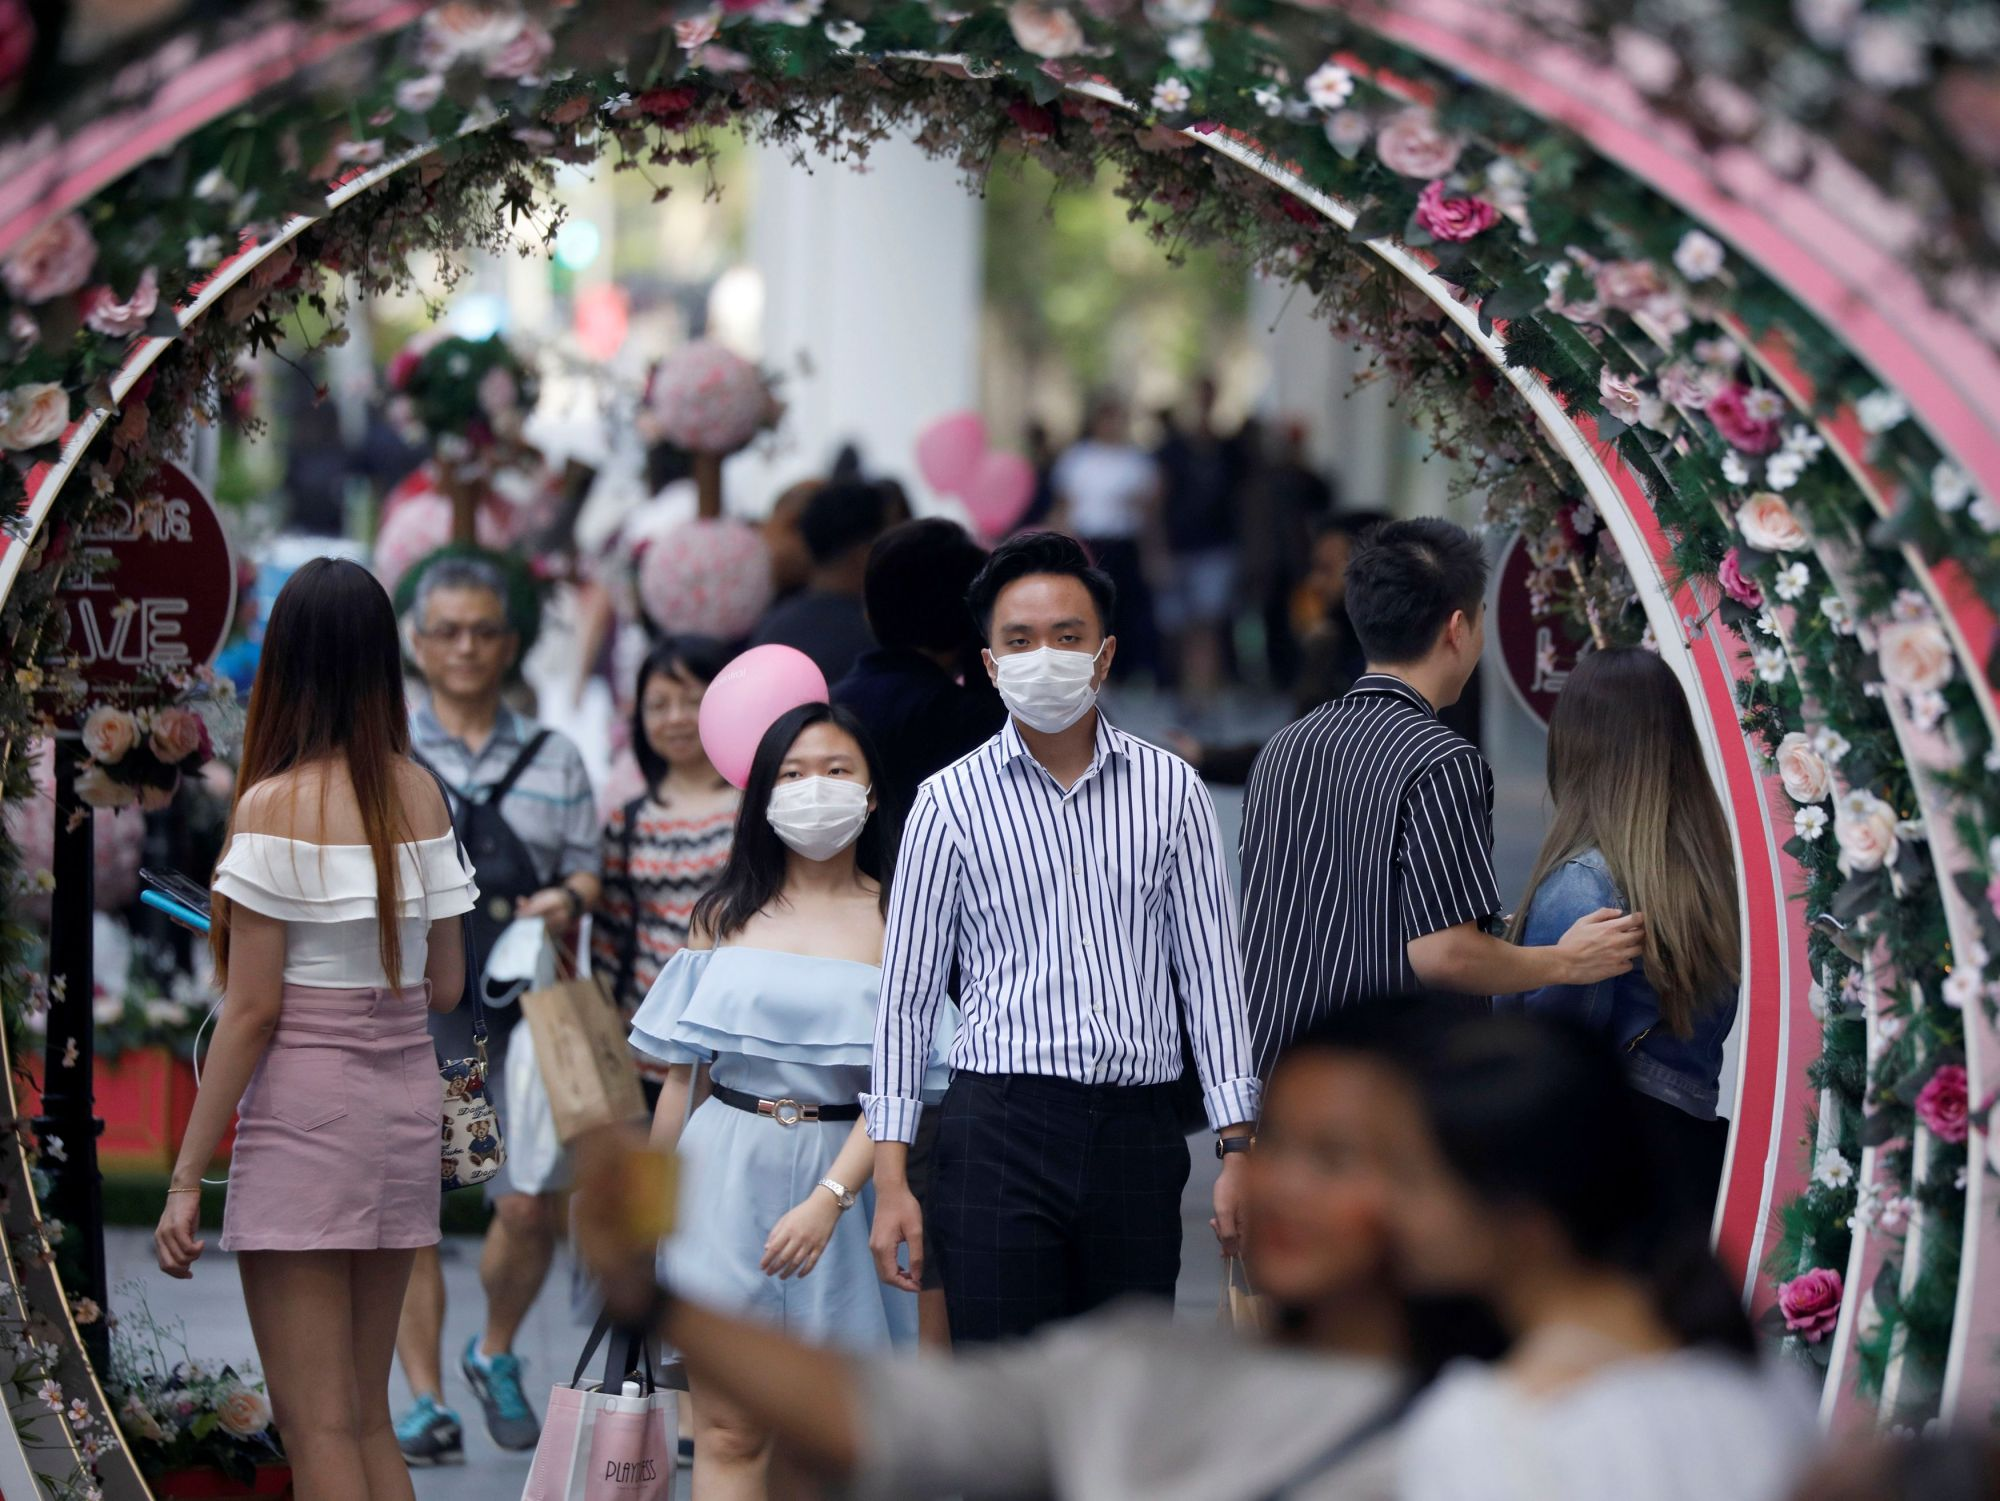 A masked couple celebrate Valentine's Day at Orchard Road in Singapore on Friday. | REUTERS